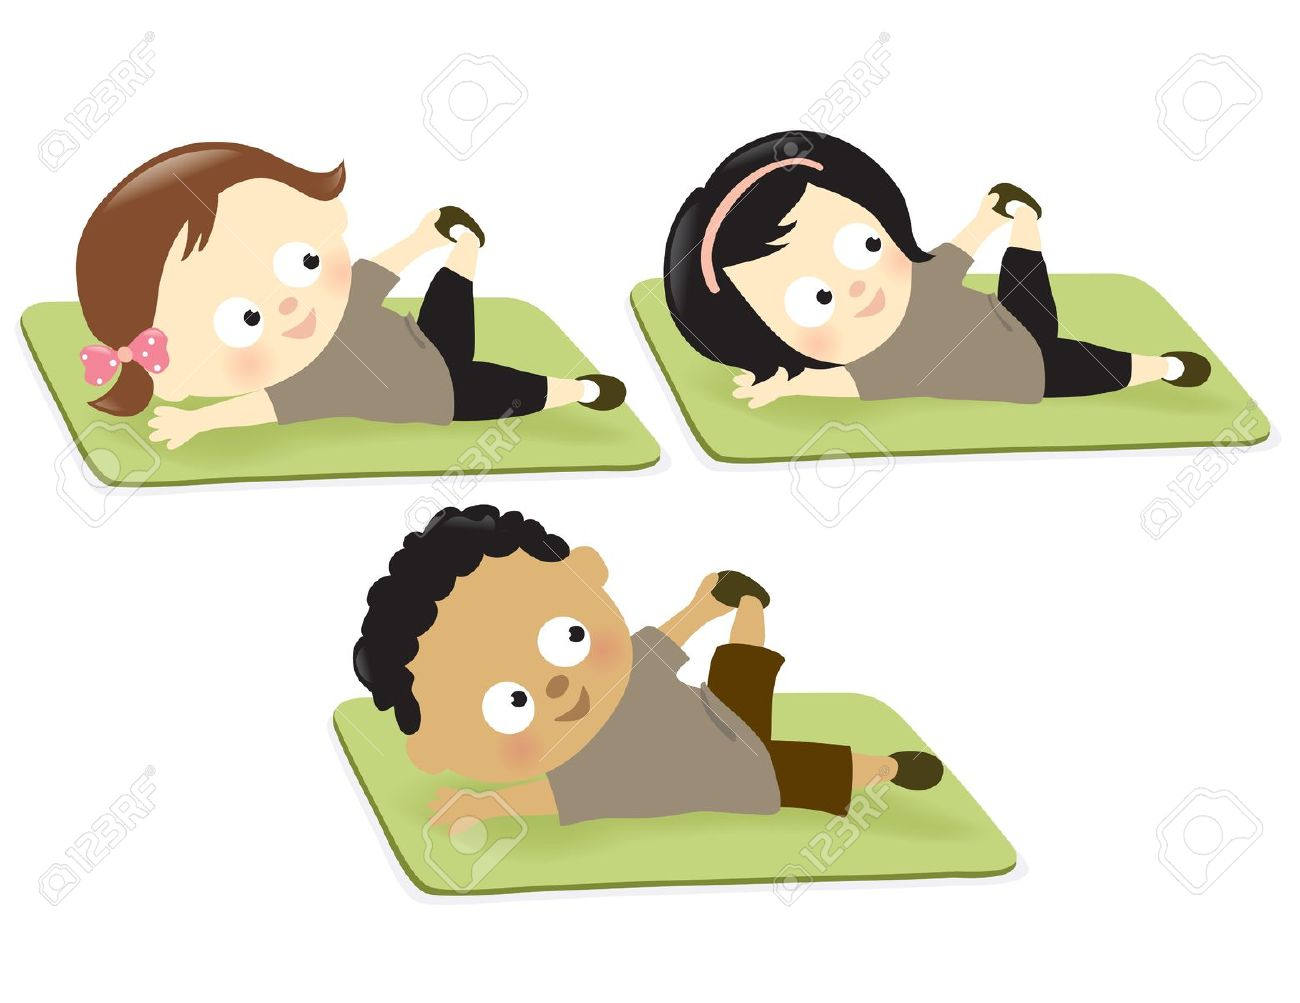 Kids on floor mats exercising free clipart.